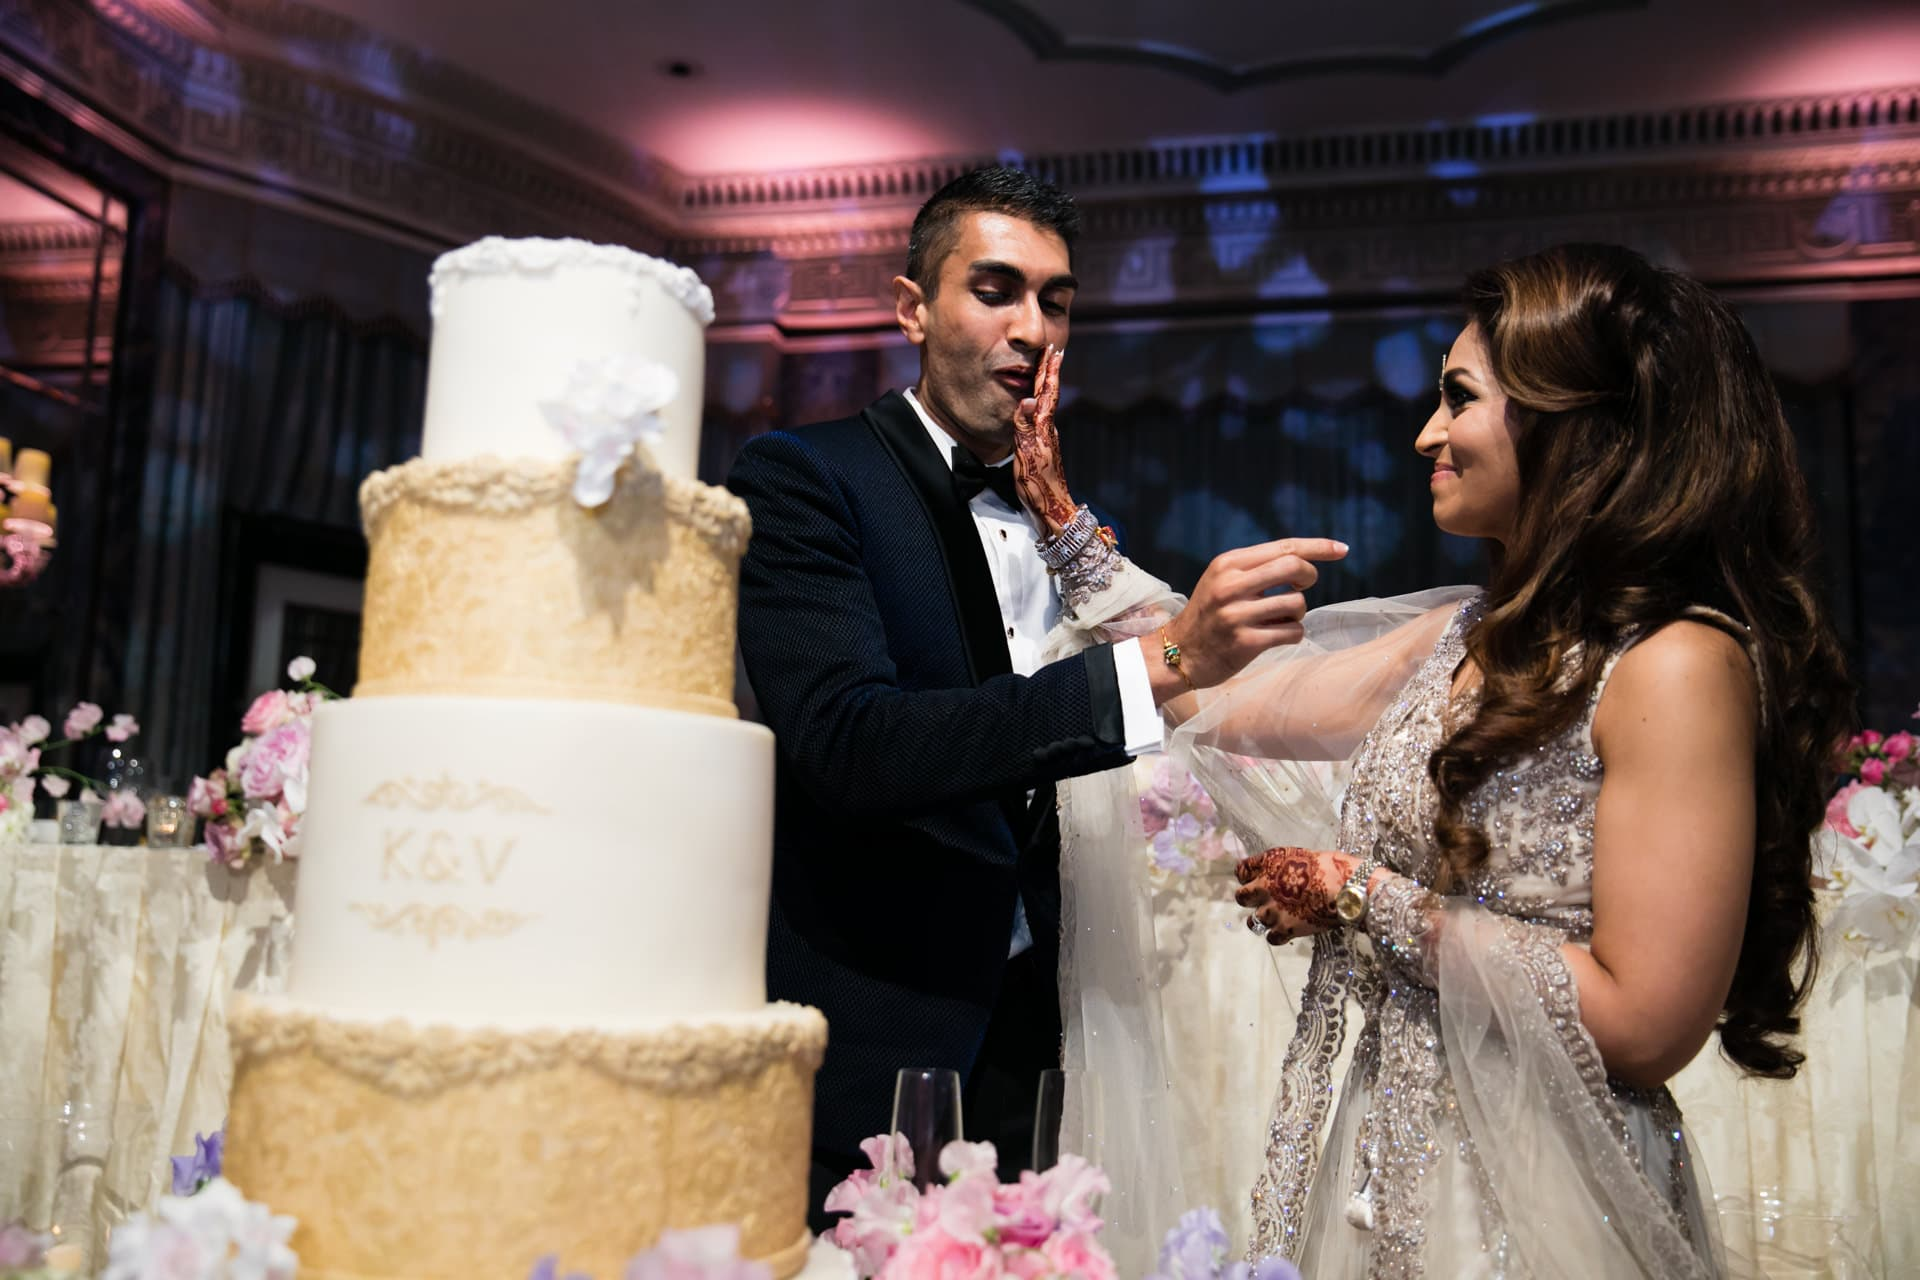 Asian wedding couple by the cake